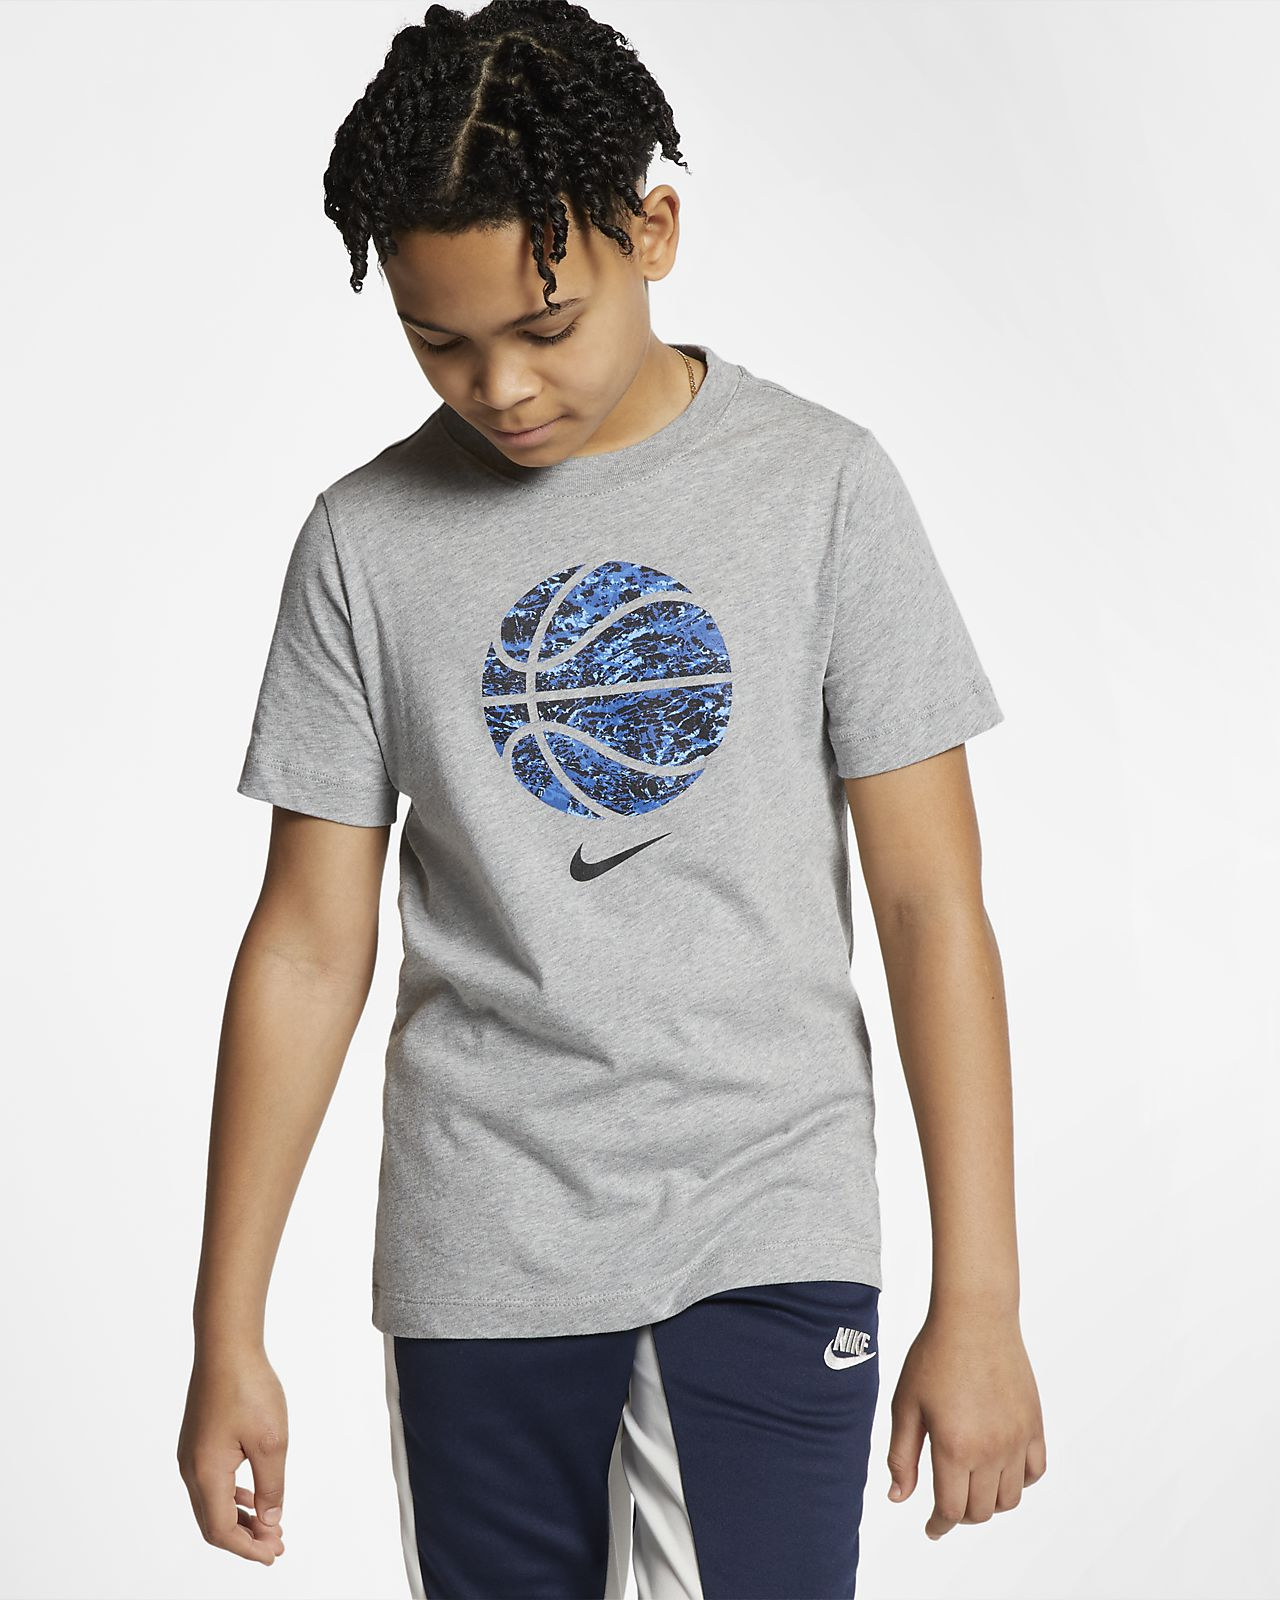 Nike Sportswear Big Kids' (Boys') T-Shirt